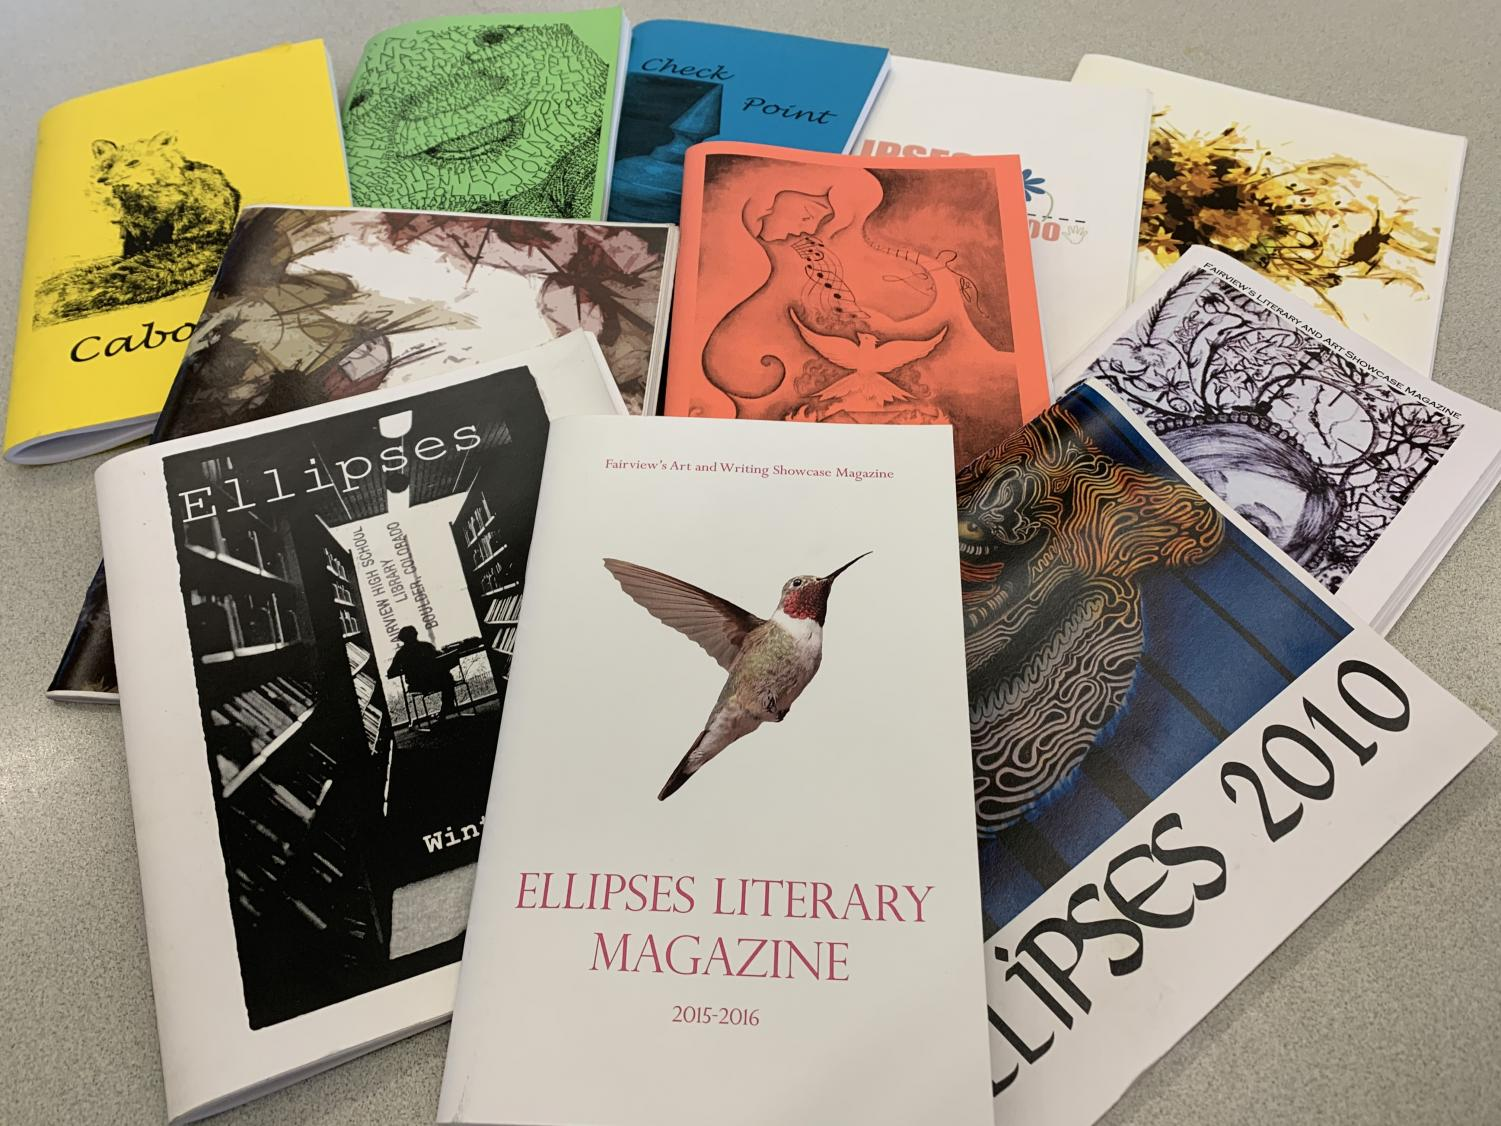 Various Copies of the Ellipses Literary Magazine